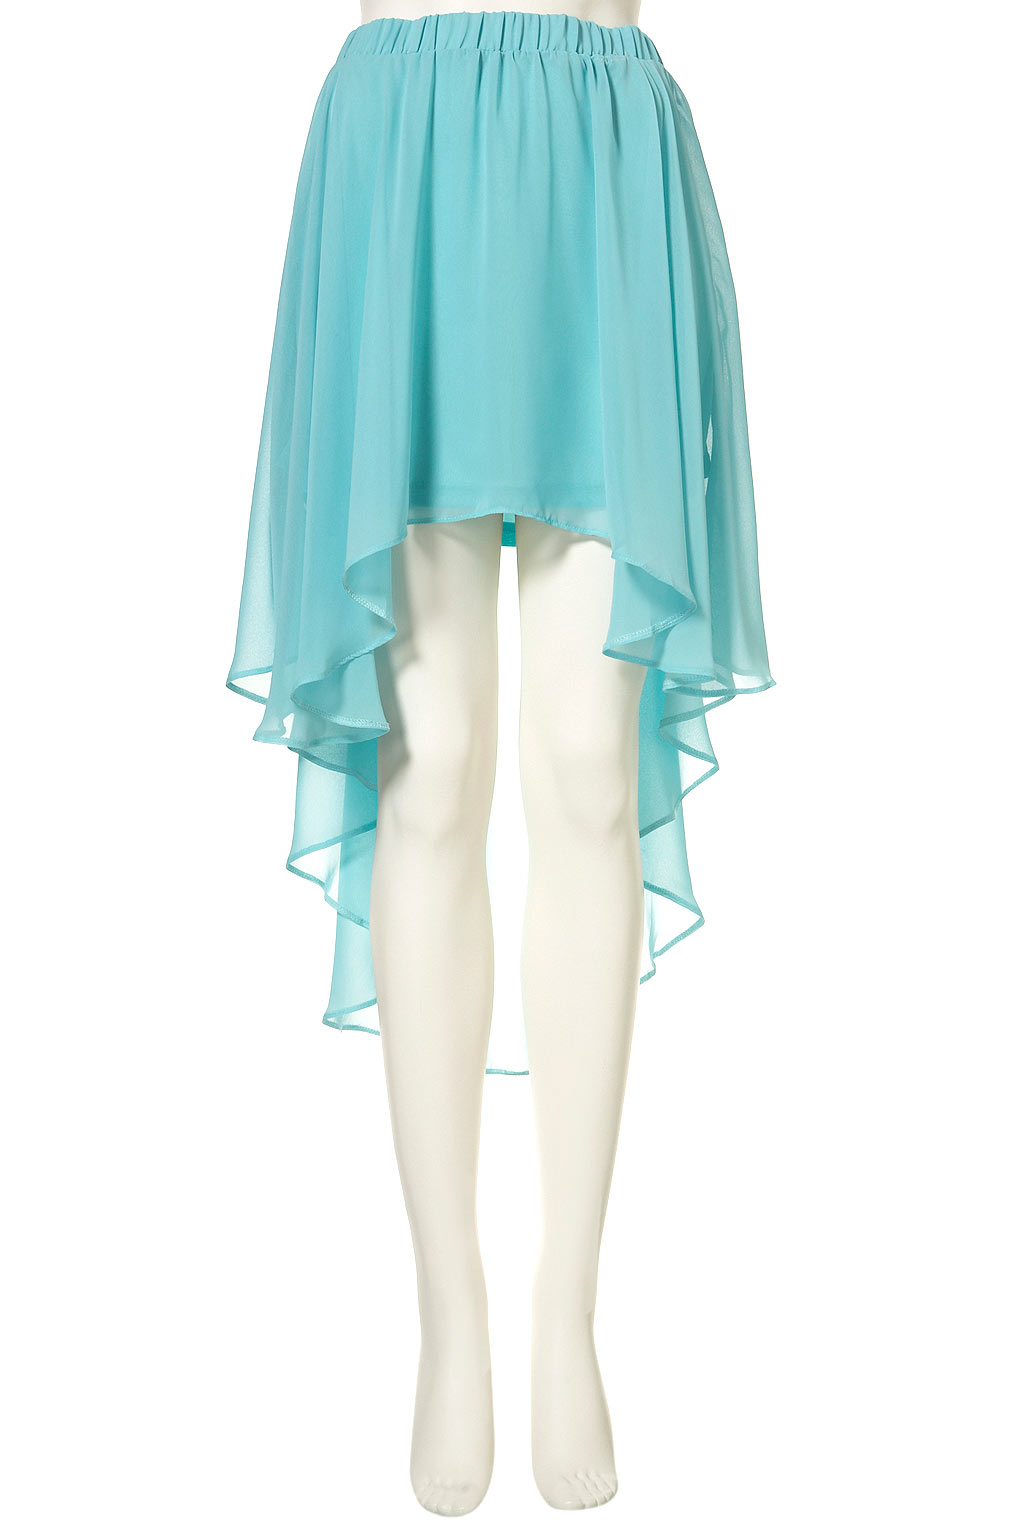 louise thompson mint green high low skirt made in chelsea